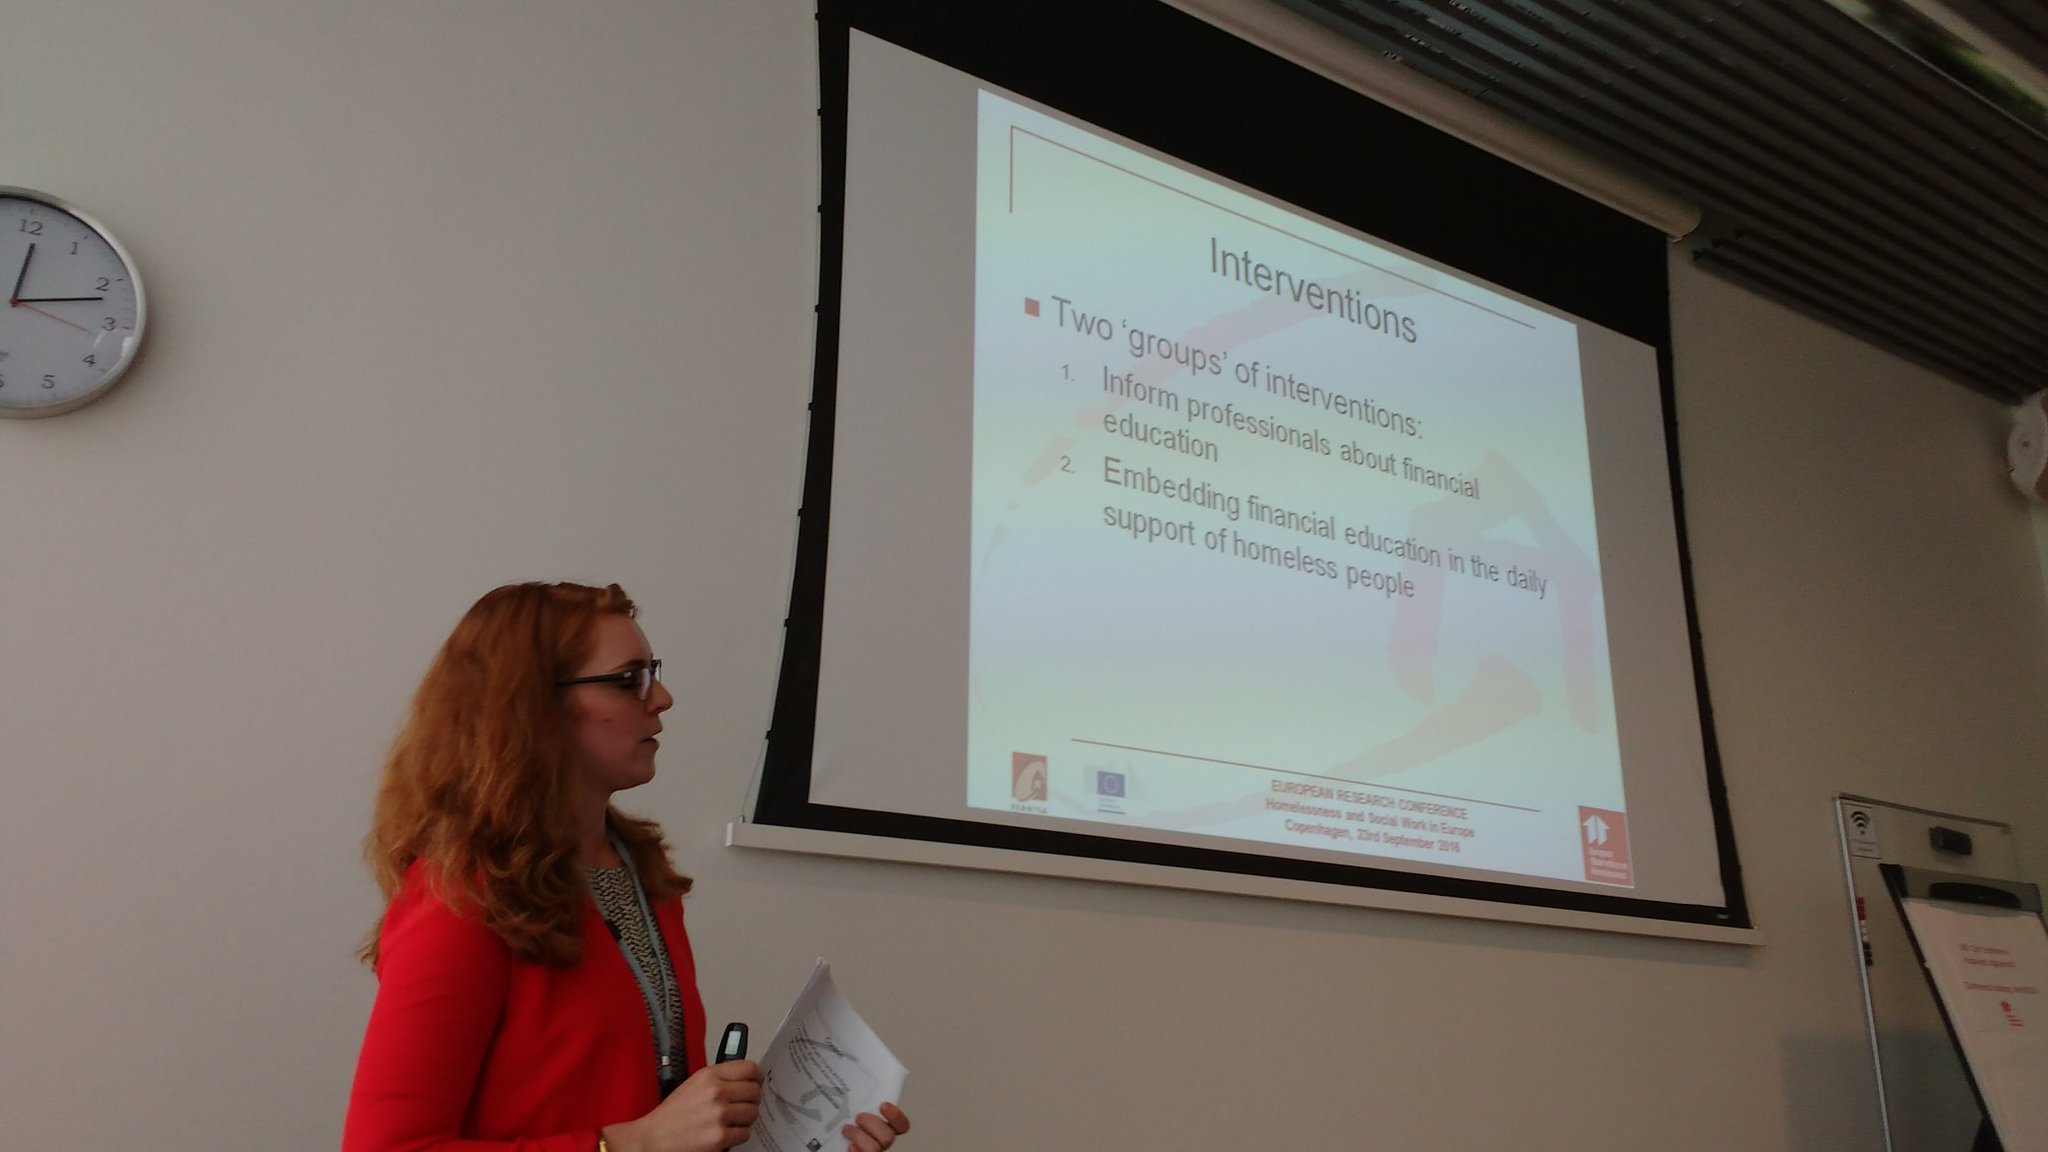 @rosinevandam presents research on financial education for people who are homeless #eoh2016 https://t.co/UYYzFjFO2D